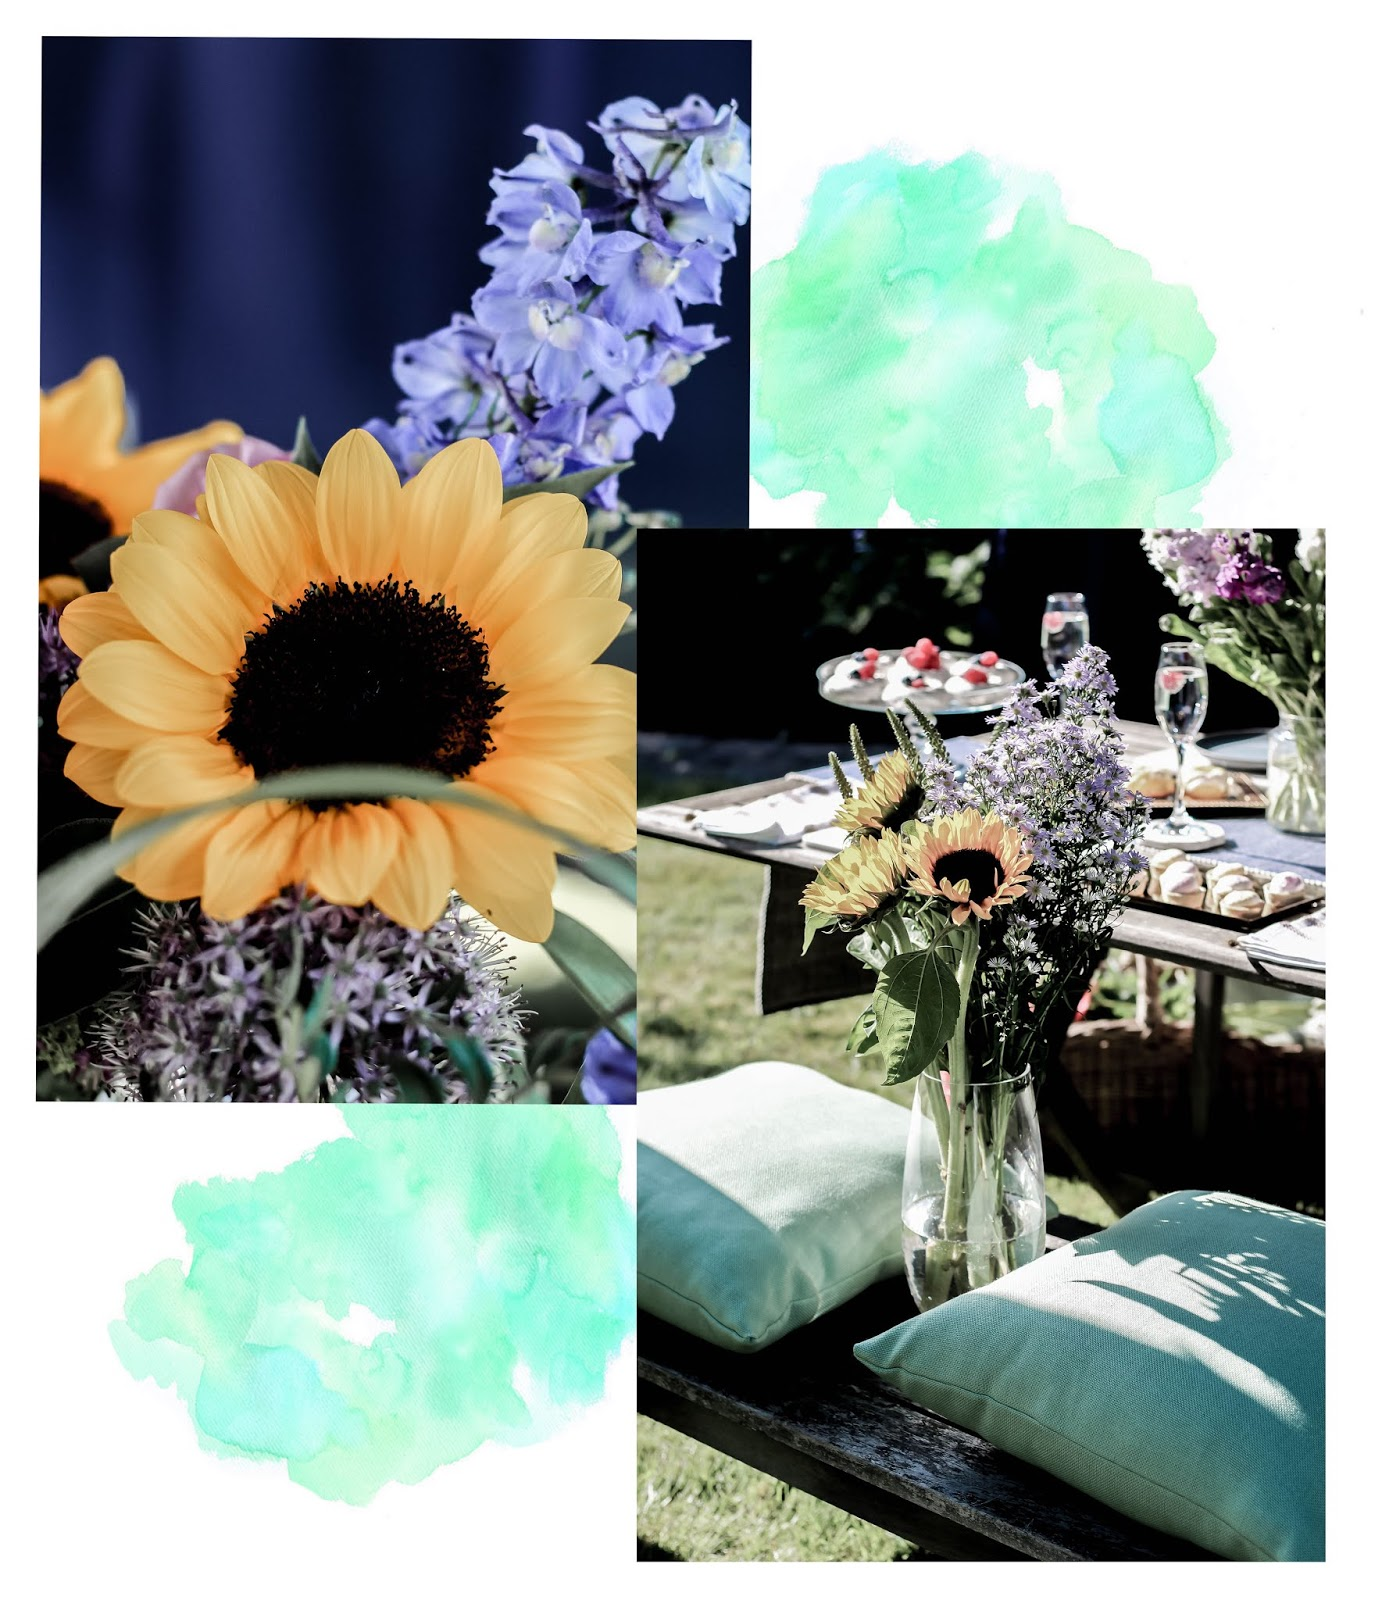 Collage of Blooms and Sunflowers